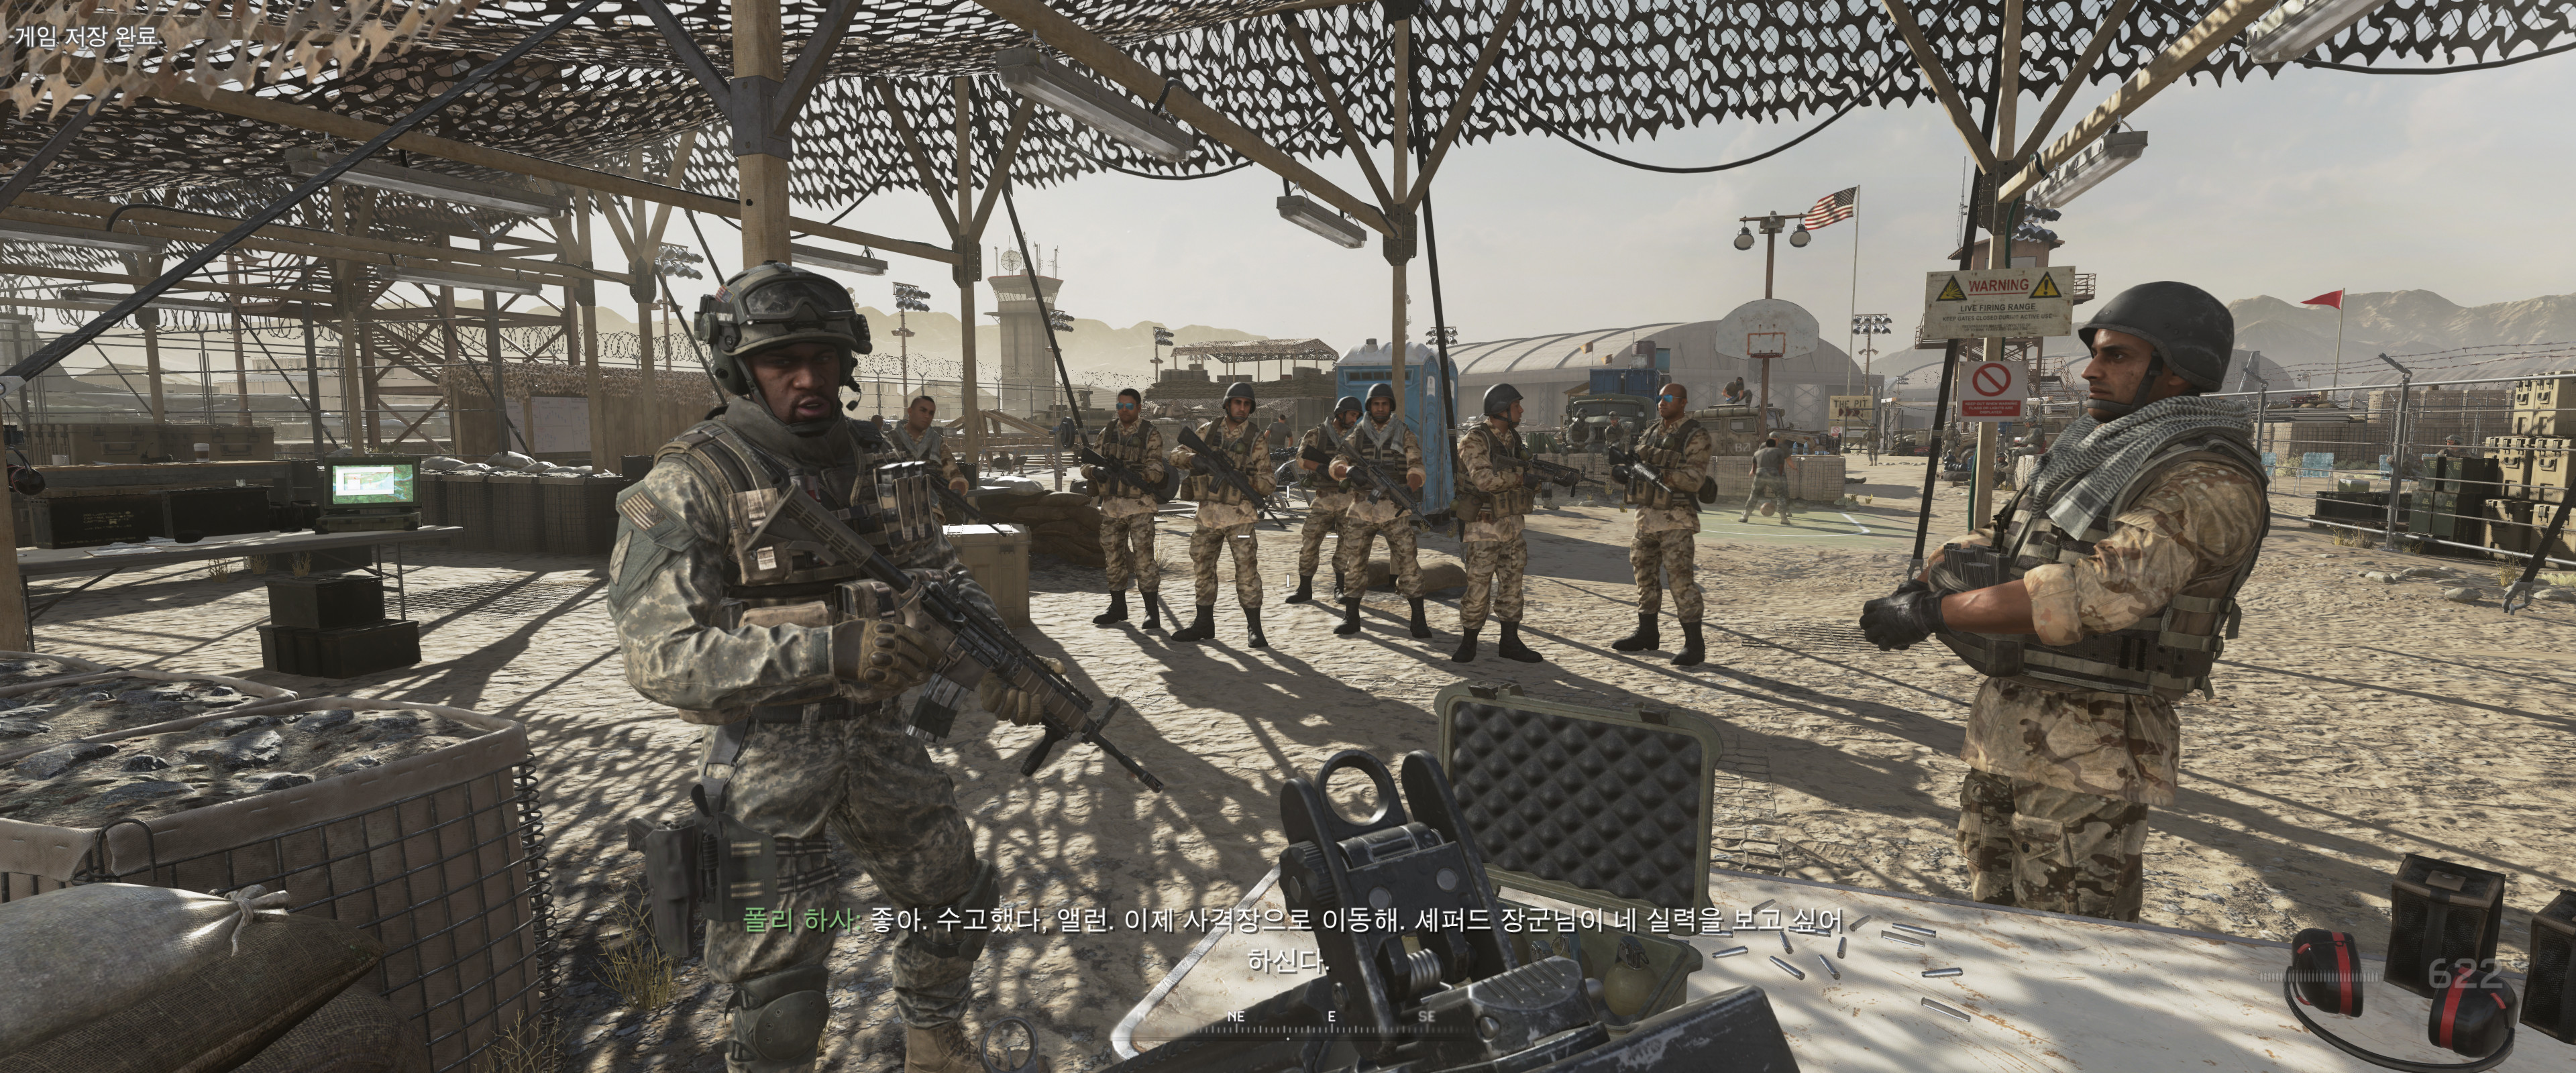 jpg_Call of Duty  Modern Warfare 2 Remastered Screenshot 2020.05.01 - 10.12.37.42.jpg